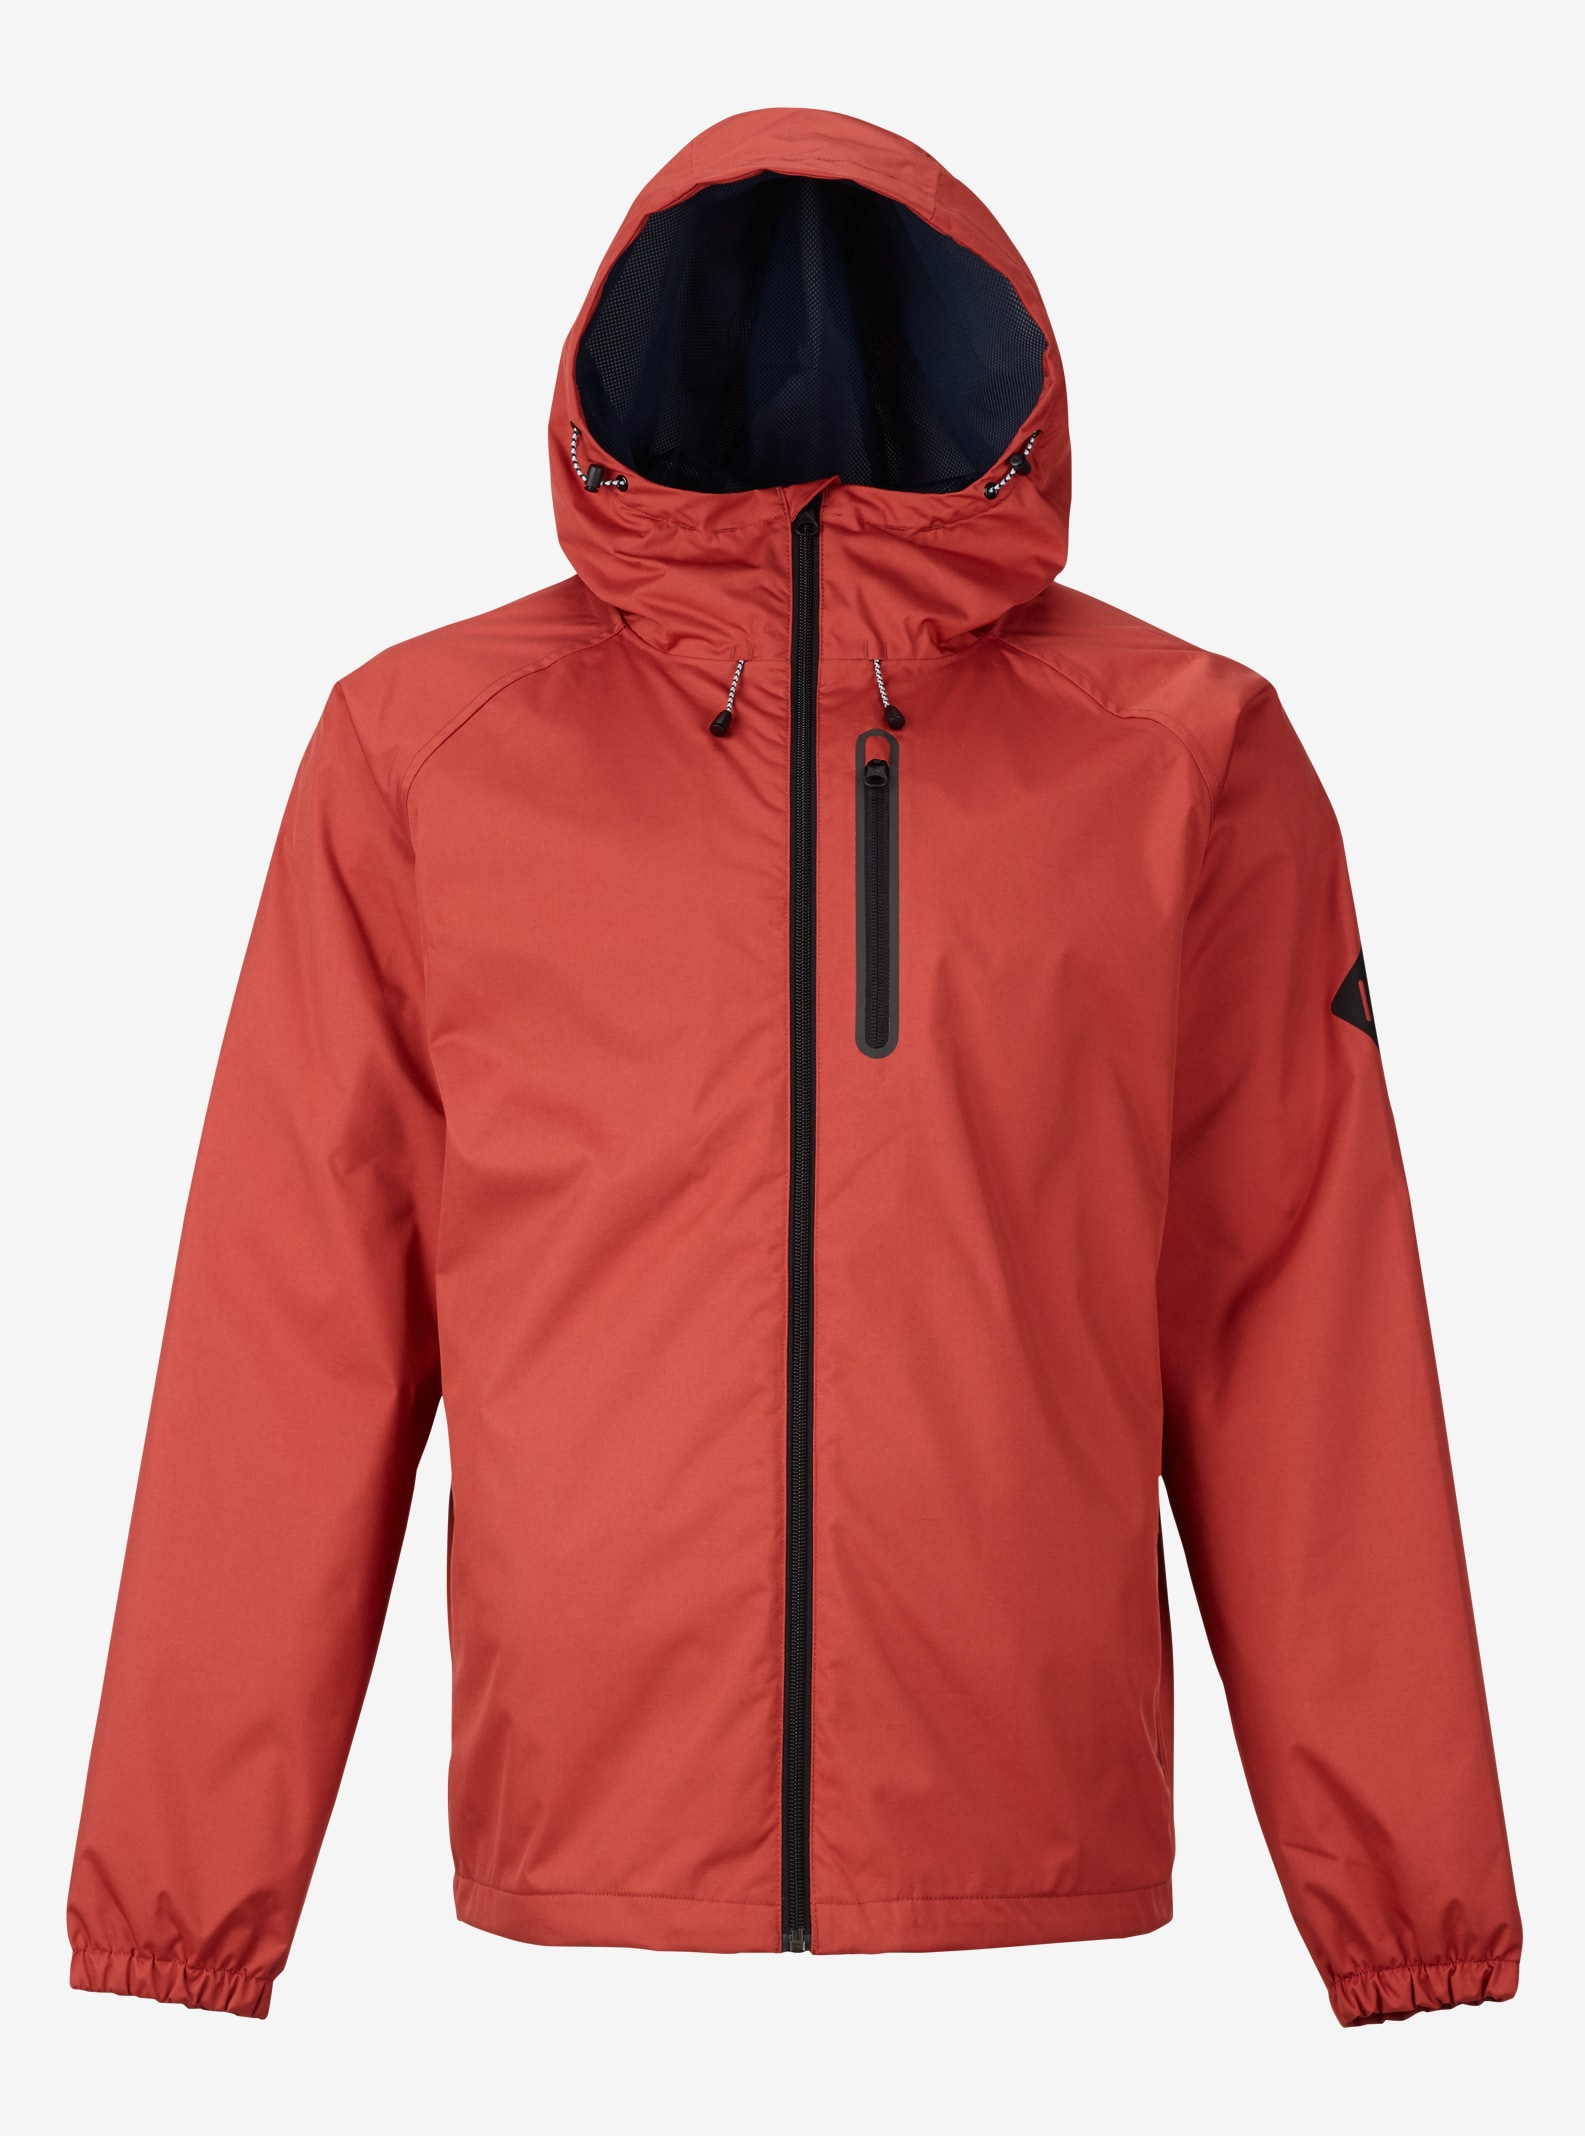 Burton Portal Rain Jacket shown in Tandori